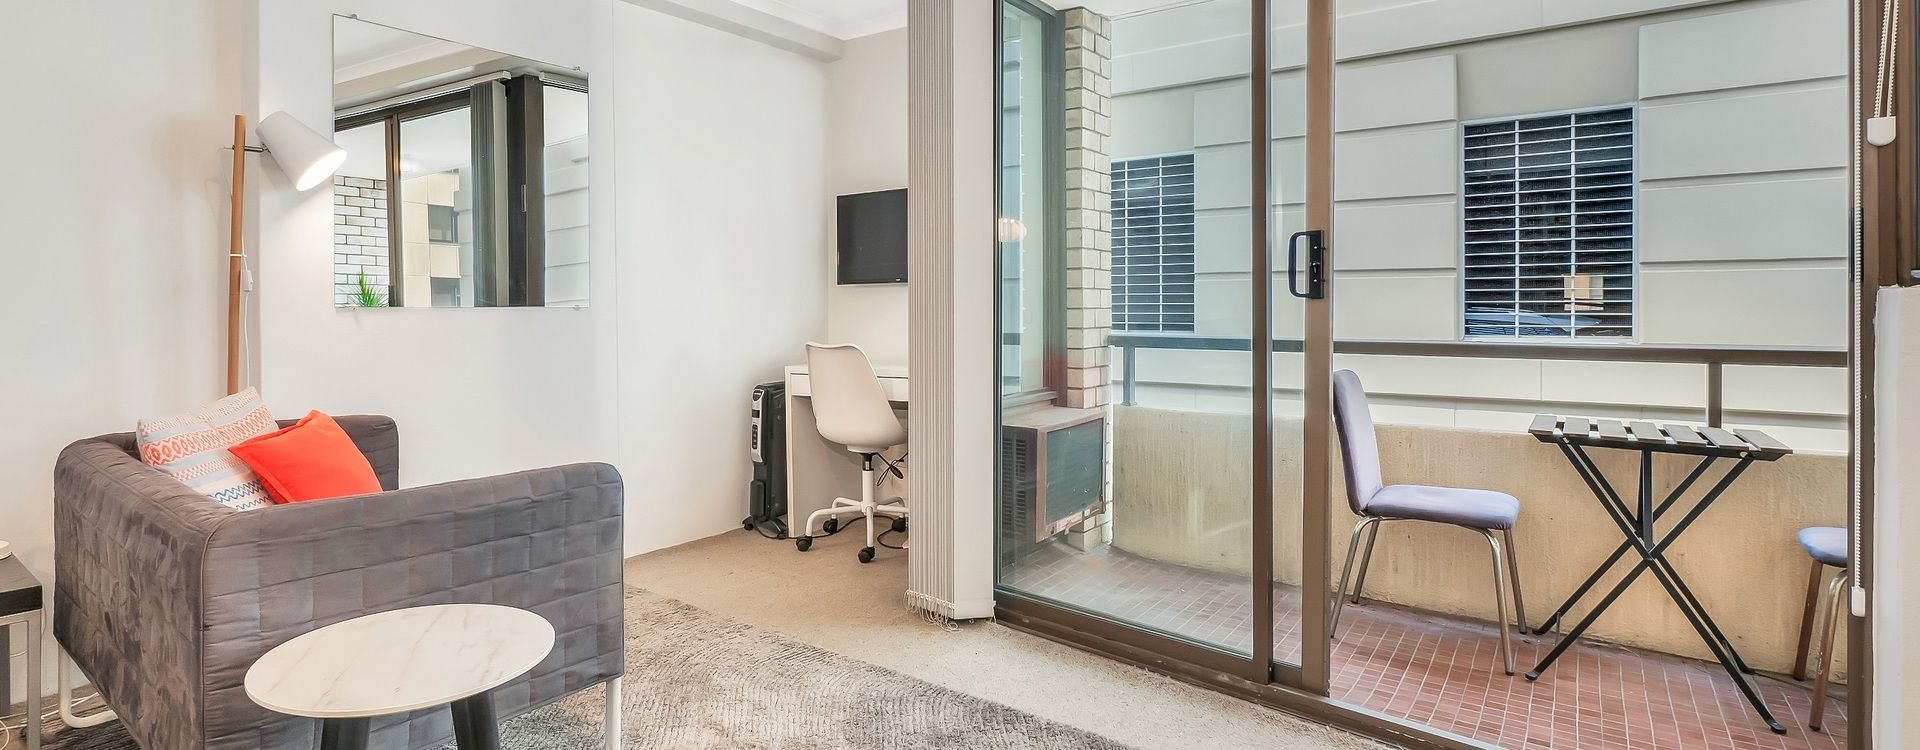 Wills Property | Real Estate Agency | 1C/79 Oxford Street, Bondi Junction, New South Wales 2022 | +61 2 9387 1700